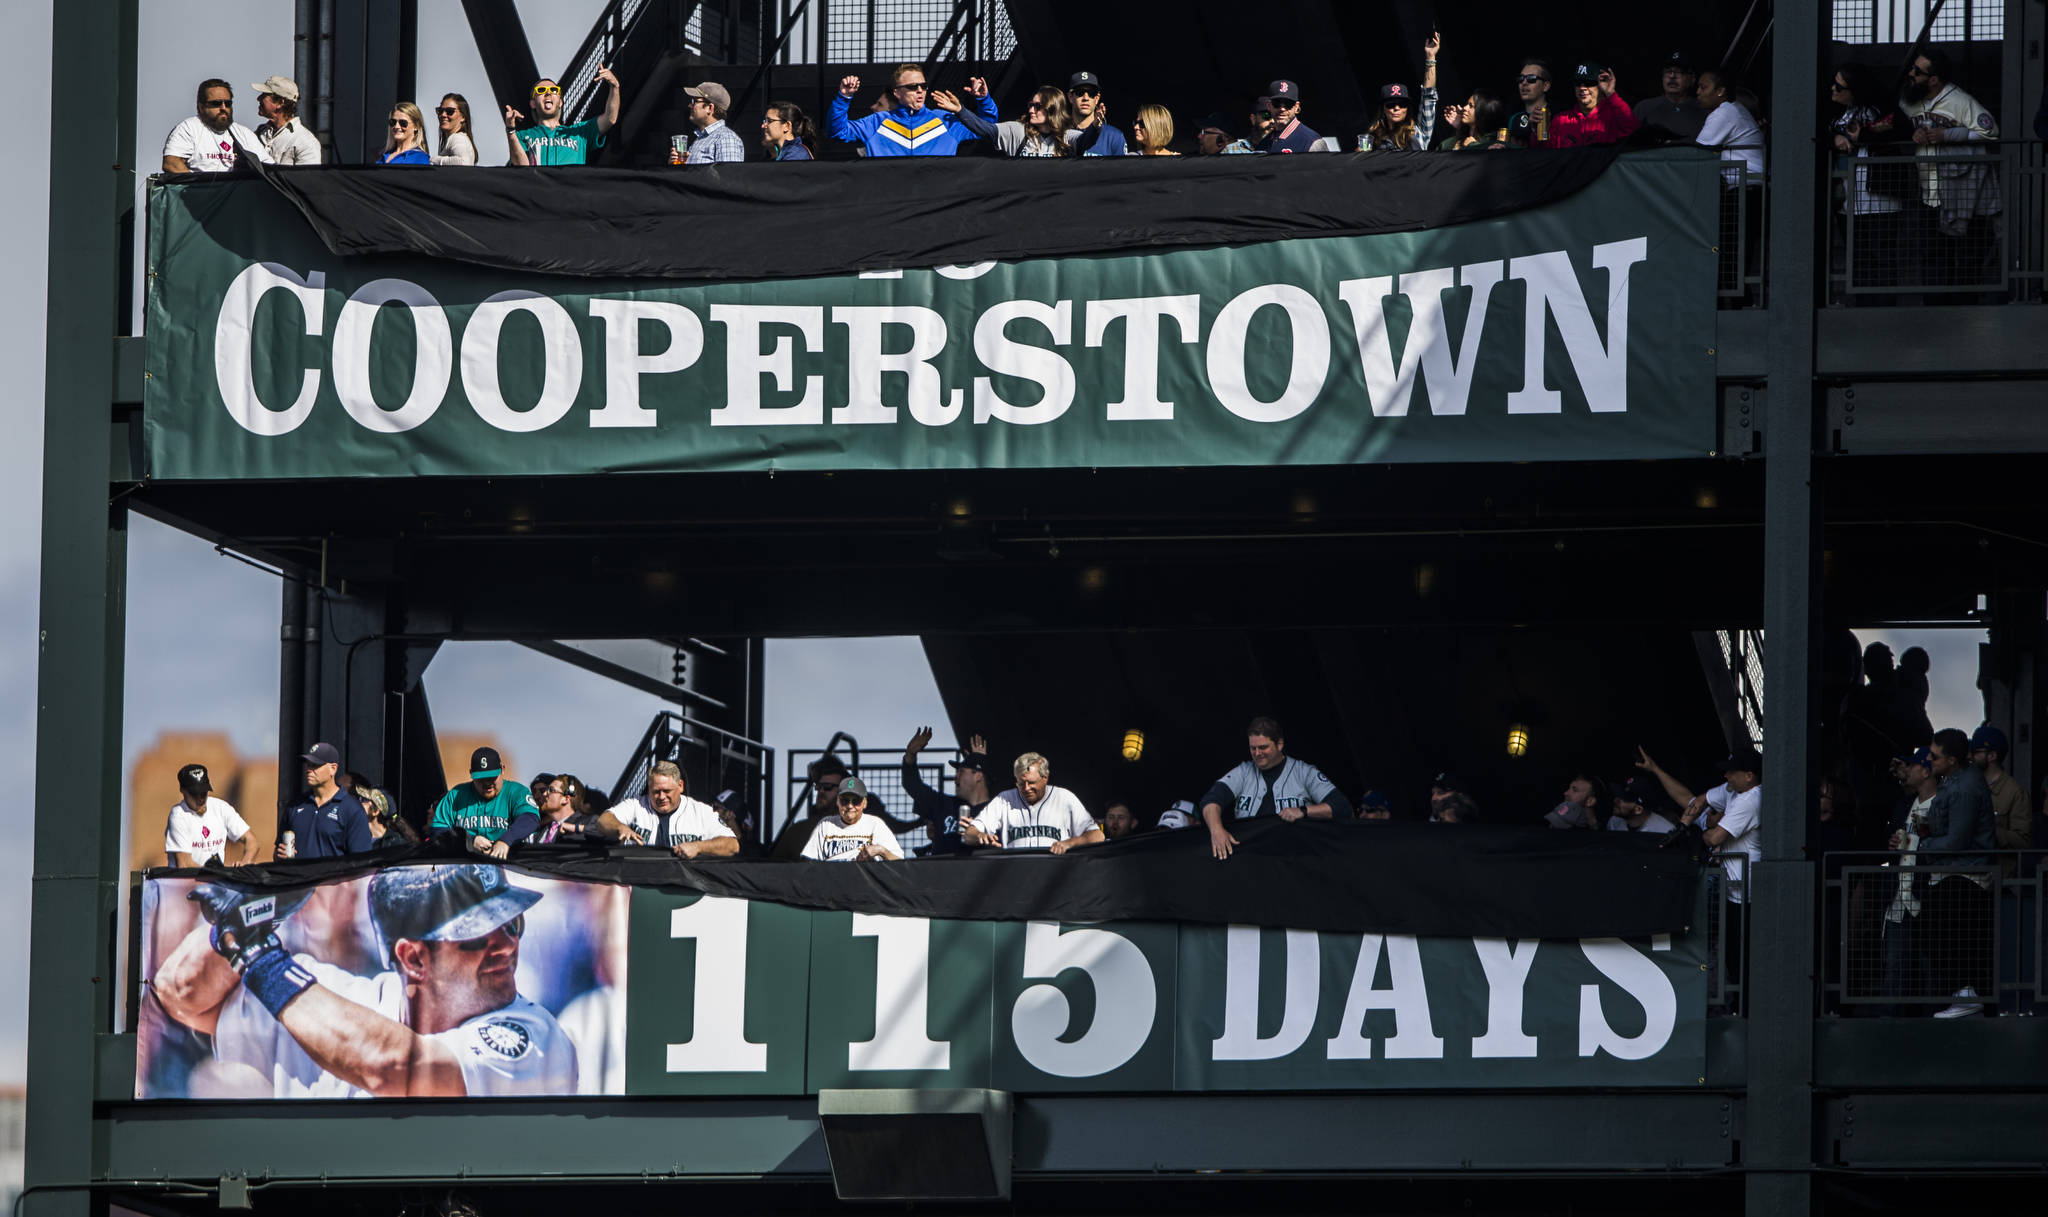 A countdown to Edgar Martinez's induction into Cooperstown is revealed during Opening Day at T-Mobile Park on Thursday, March 28, 2019 in Seattle, Wash. (Olivia Vanni / The Herald)